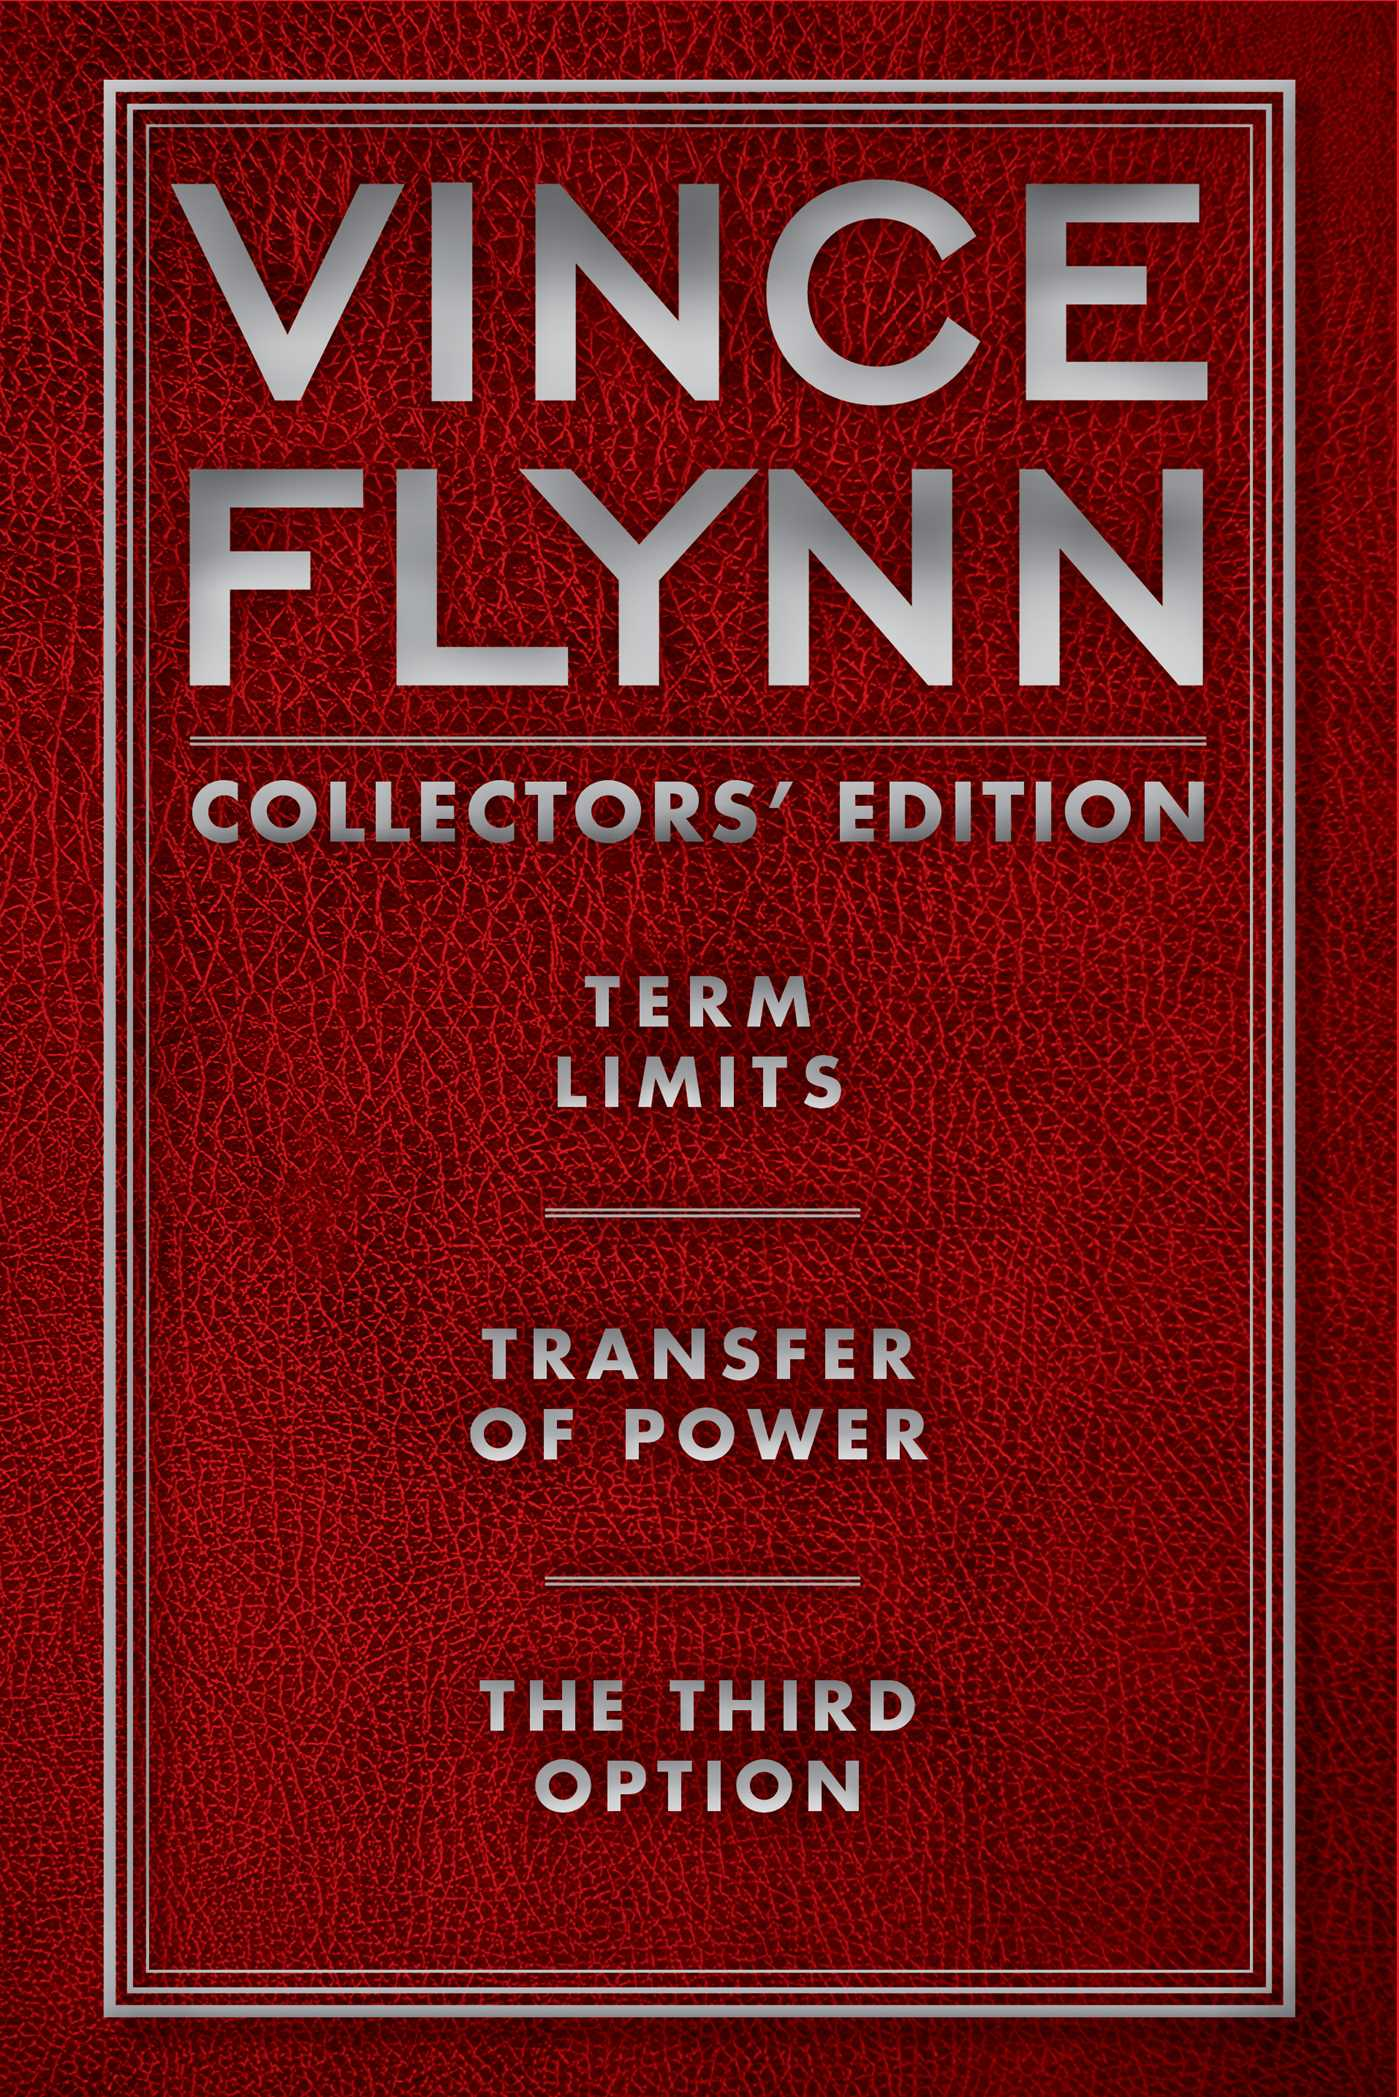 Vince flynn collectors edition 1 ebook by vince flynn official term limits transfer of power and the third option fandeluxe PDF